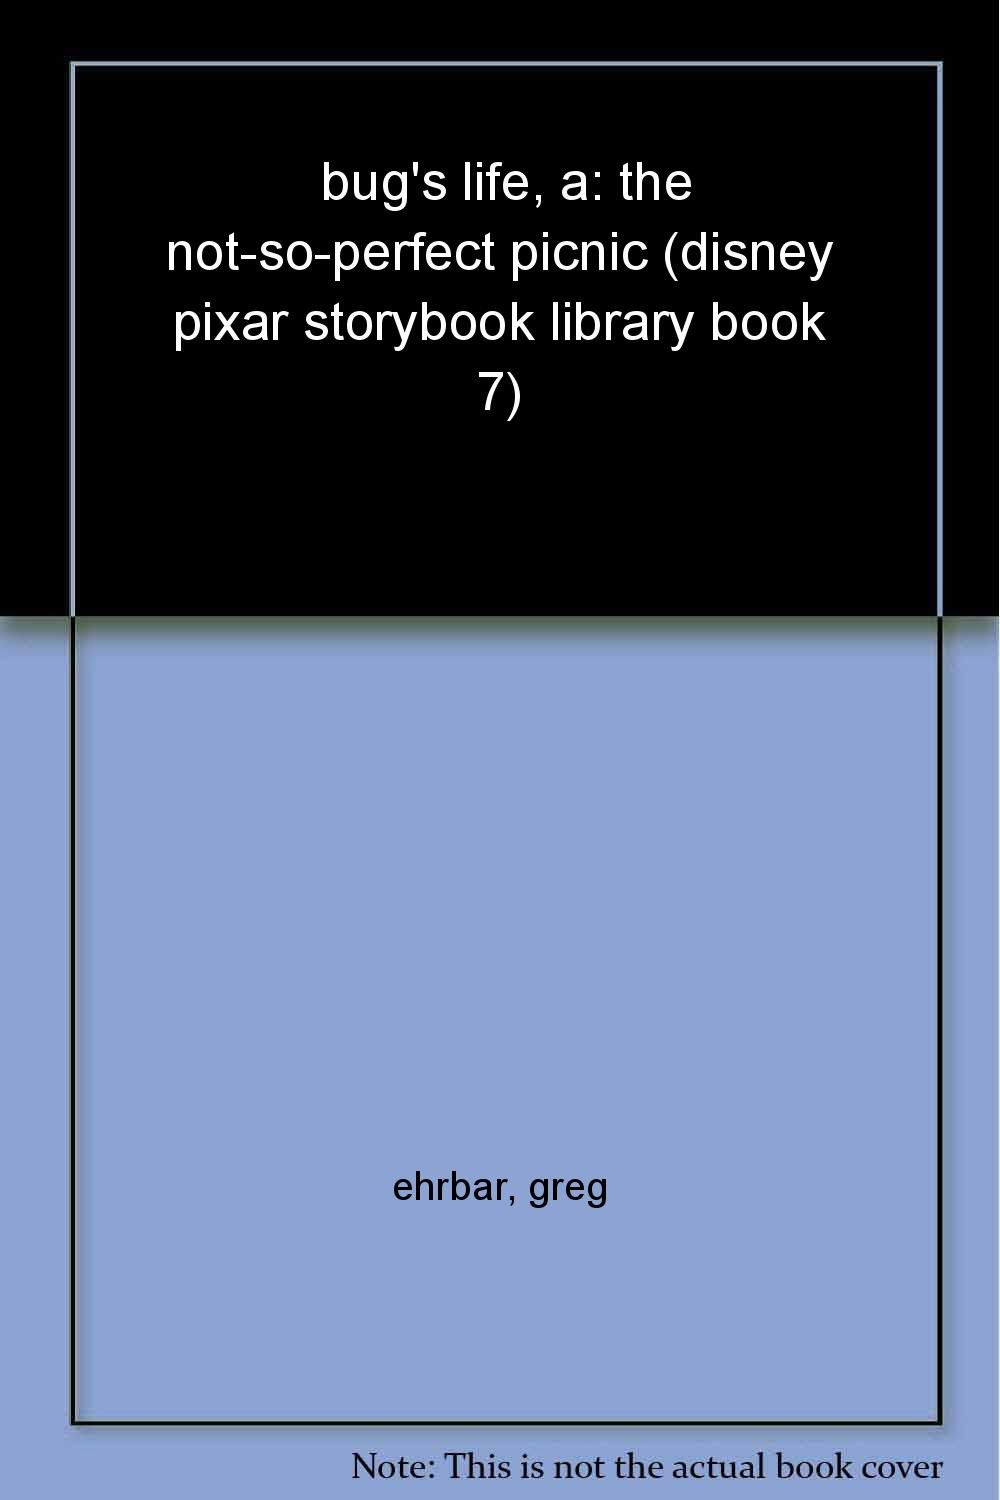 DISNEY PIXAR STORYBOOK LIBRARY, A BUGS LIFE: THE NOT SO PERFECT PICNIC pdf